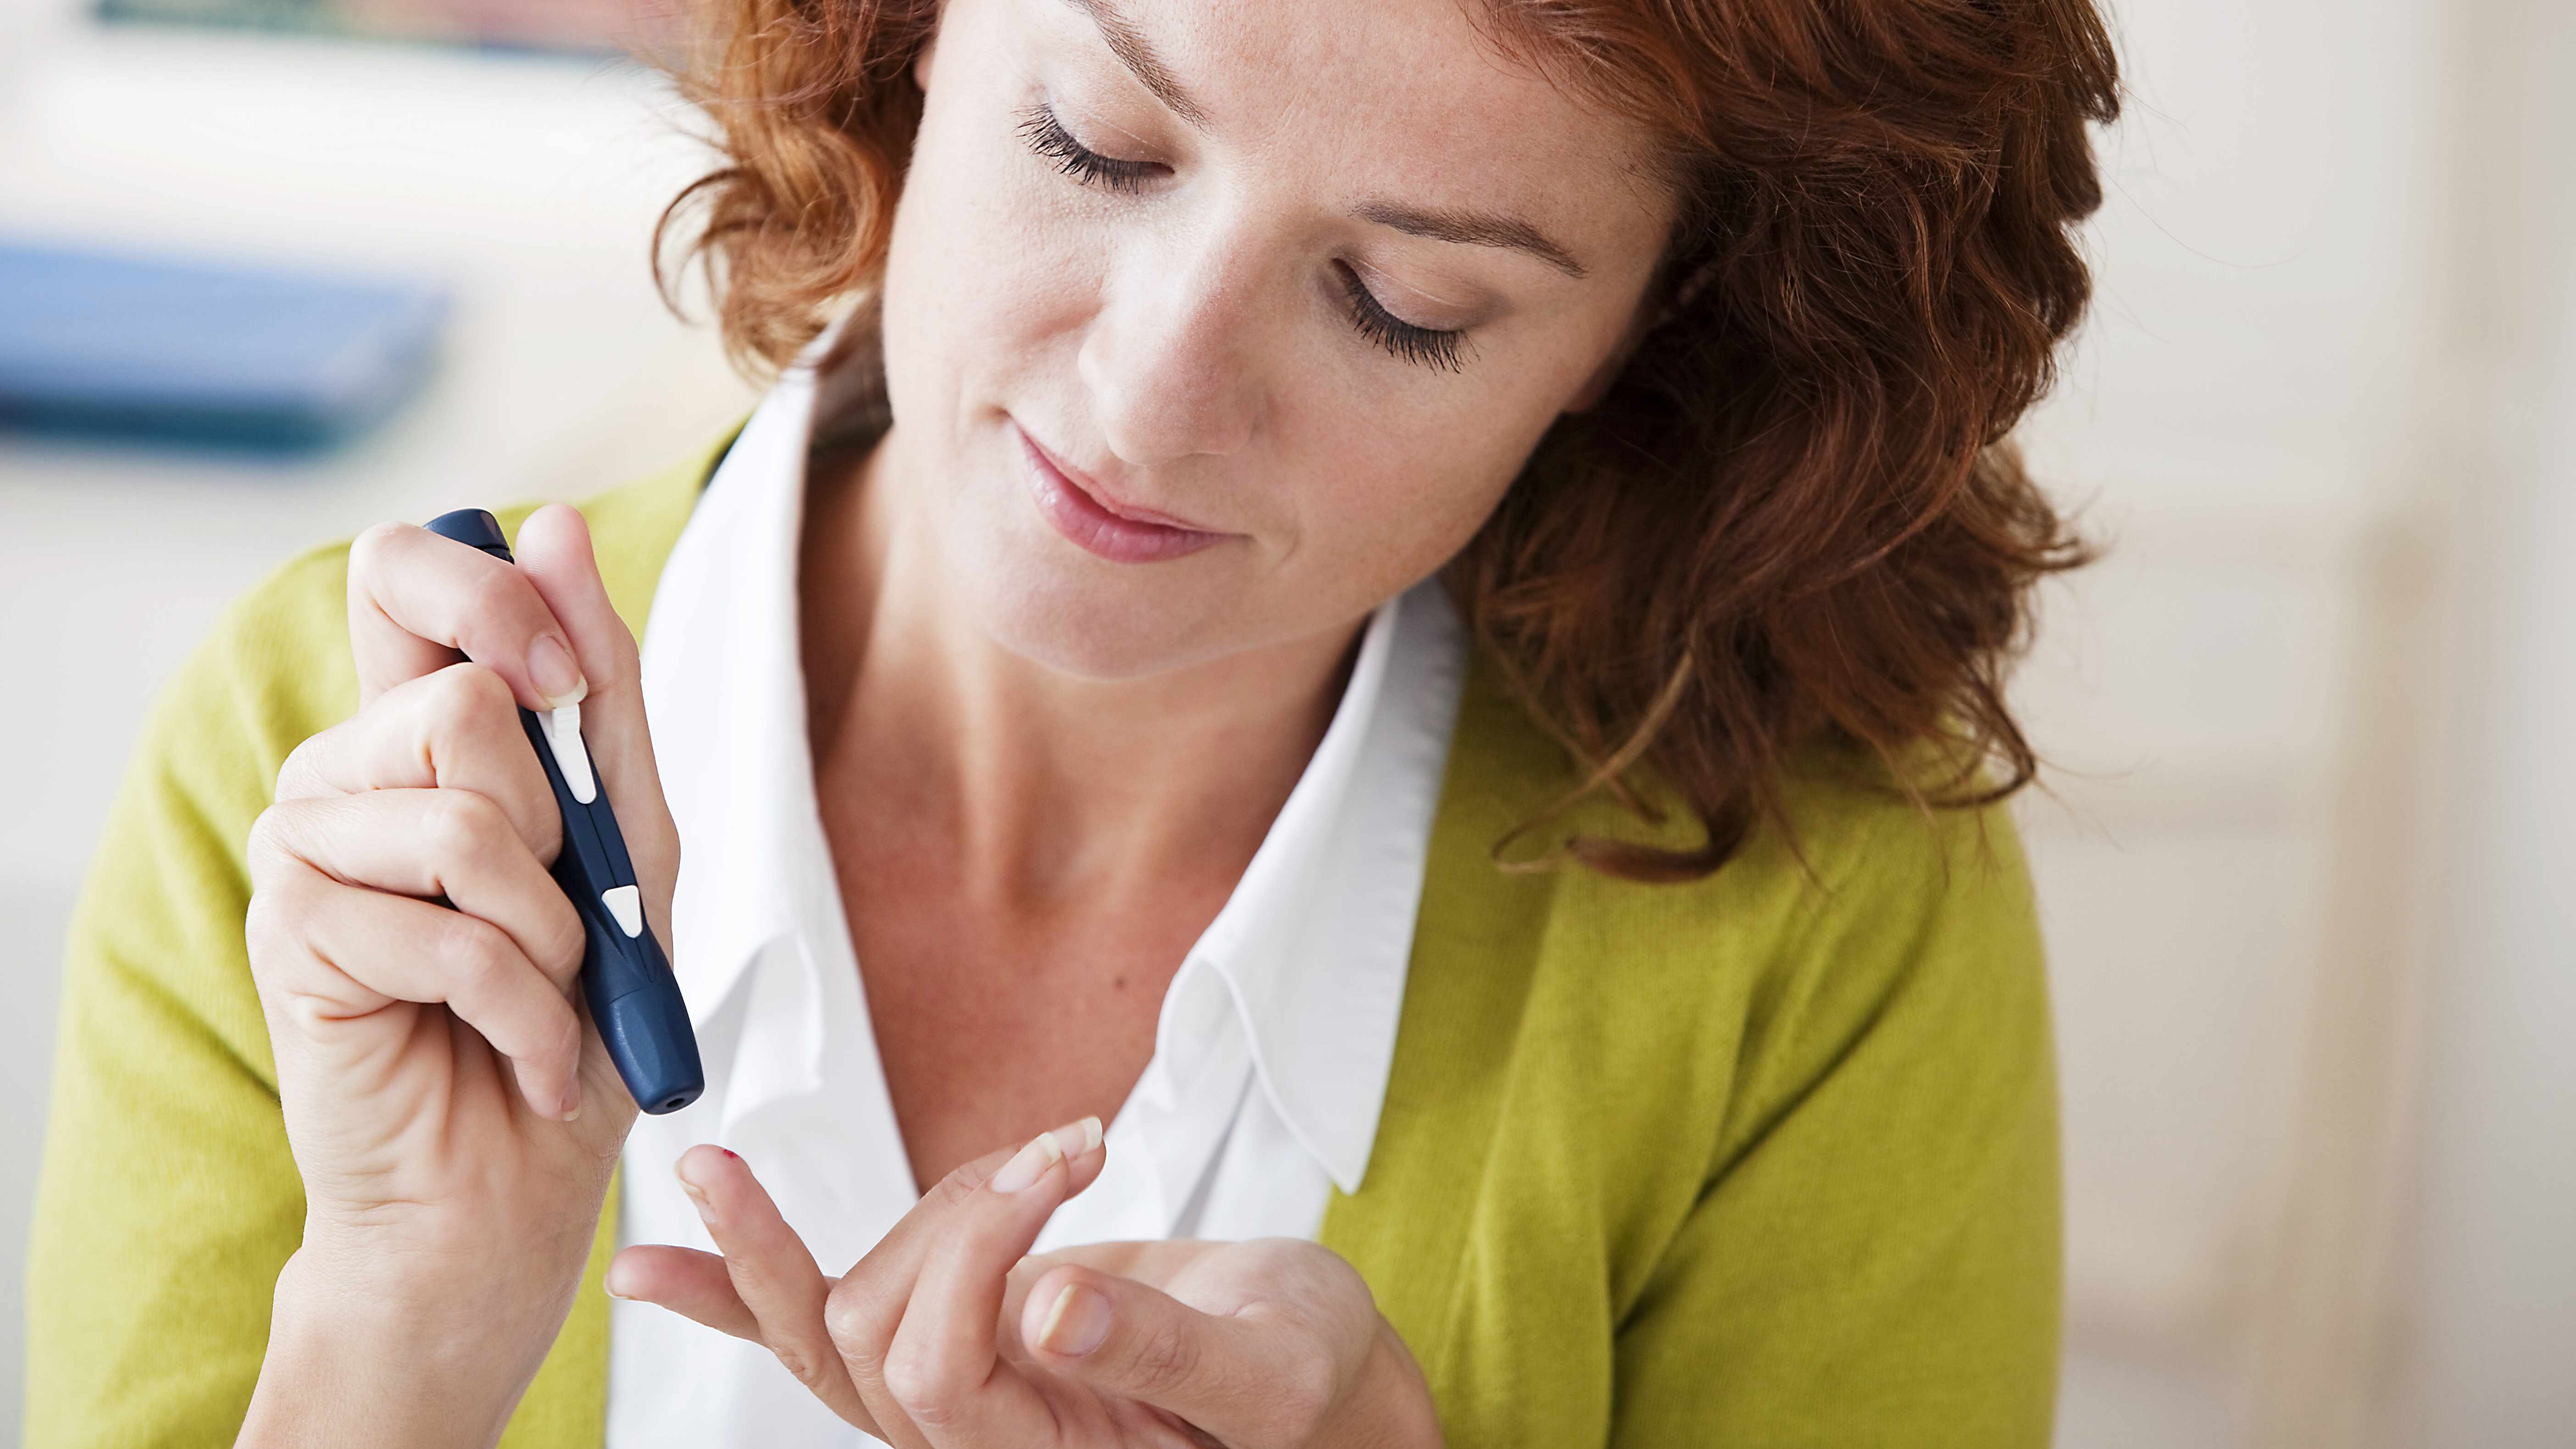 woman with diabetes 16 x 9